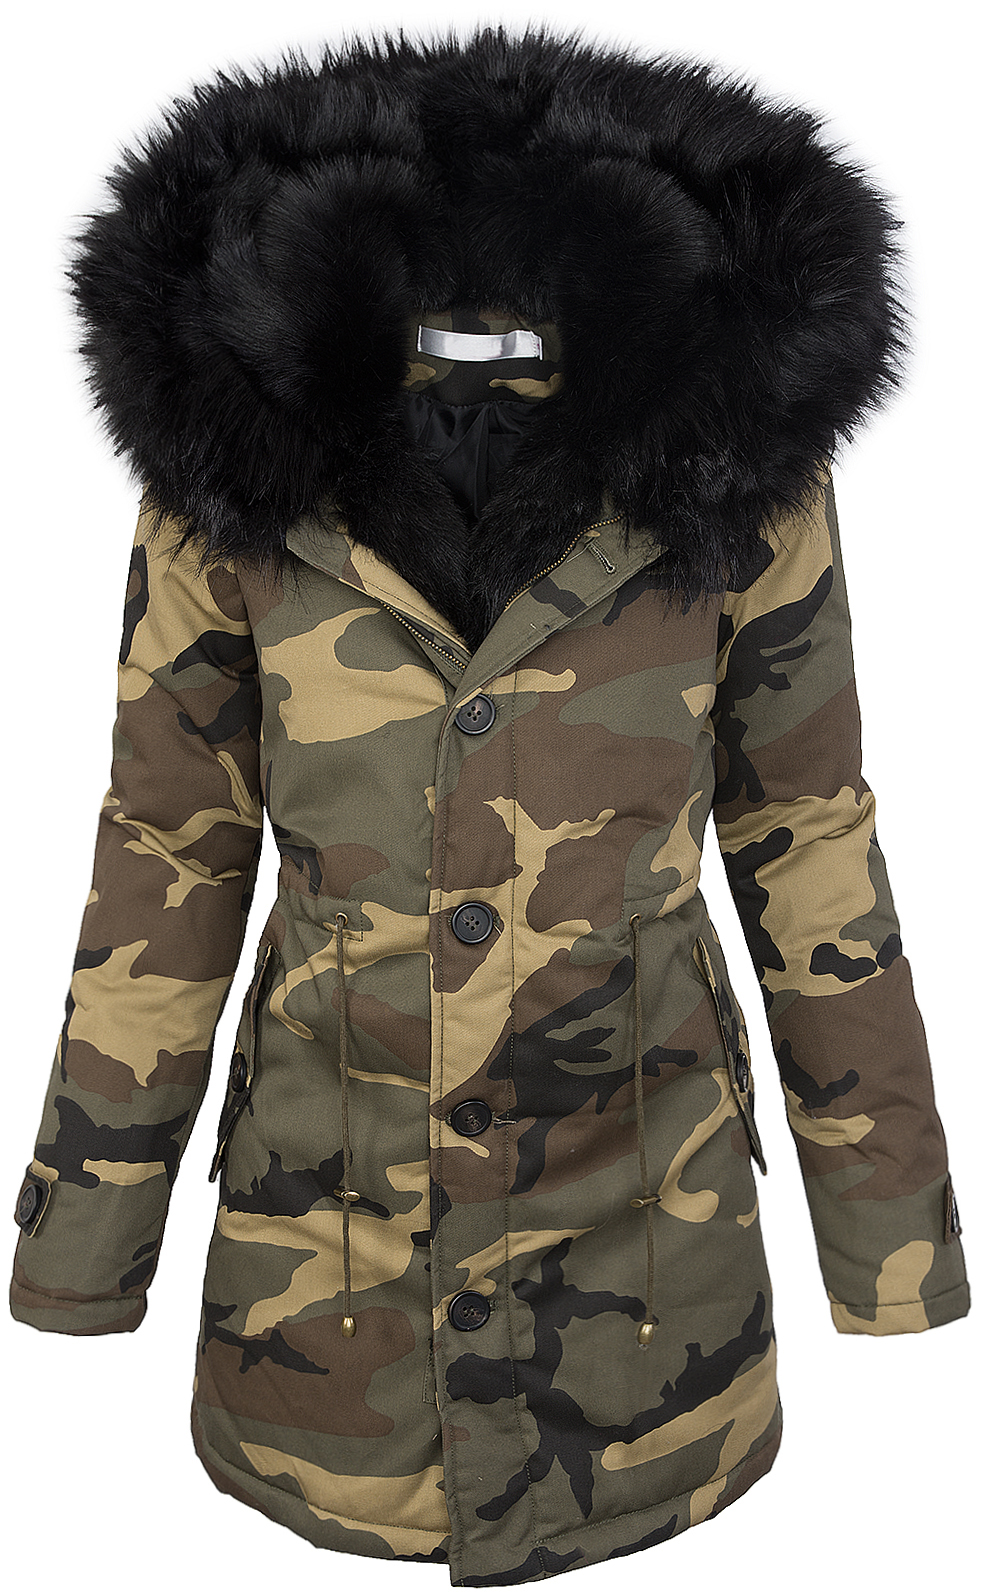 damen winter parka jacke army look damenjacke kunstfell. Black Bedroom Furniture Sets. Home Design Ideas